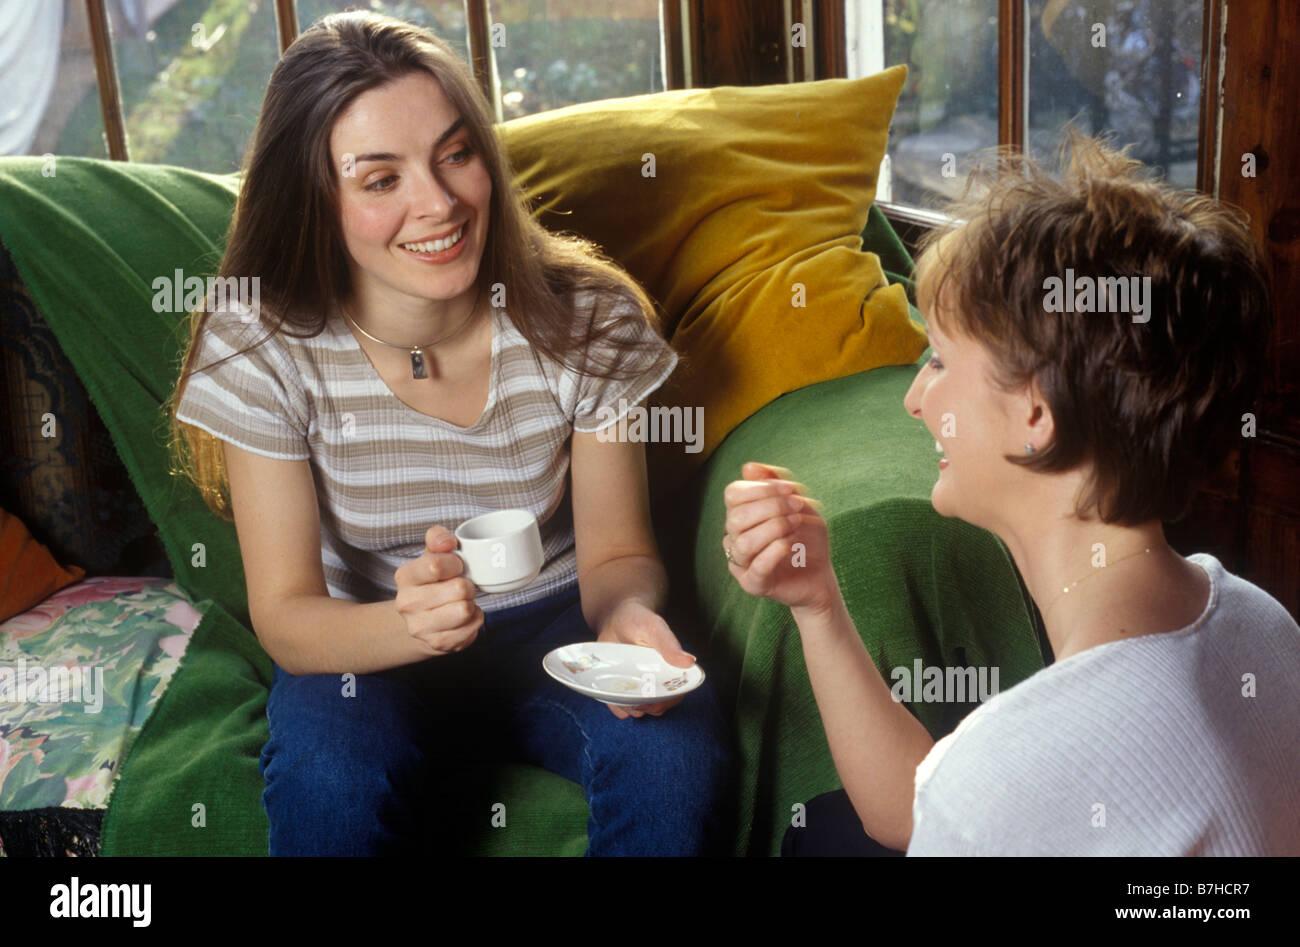 2 women chatting over a cup of coffee - Stock Image